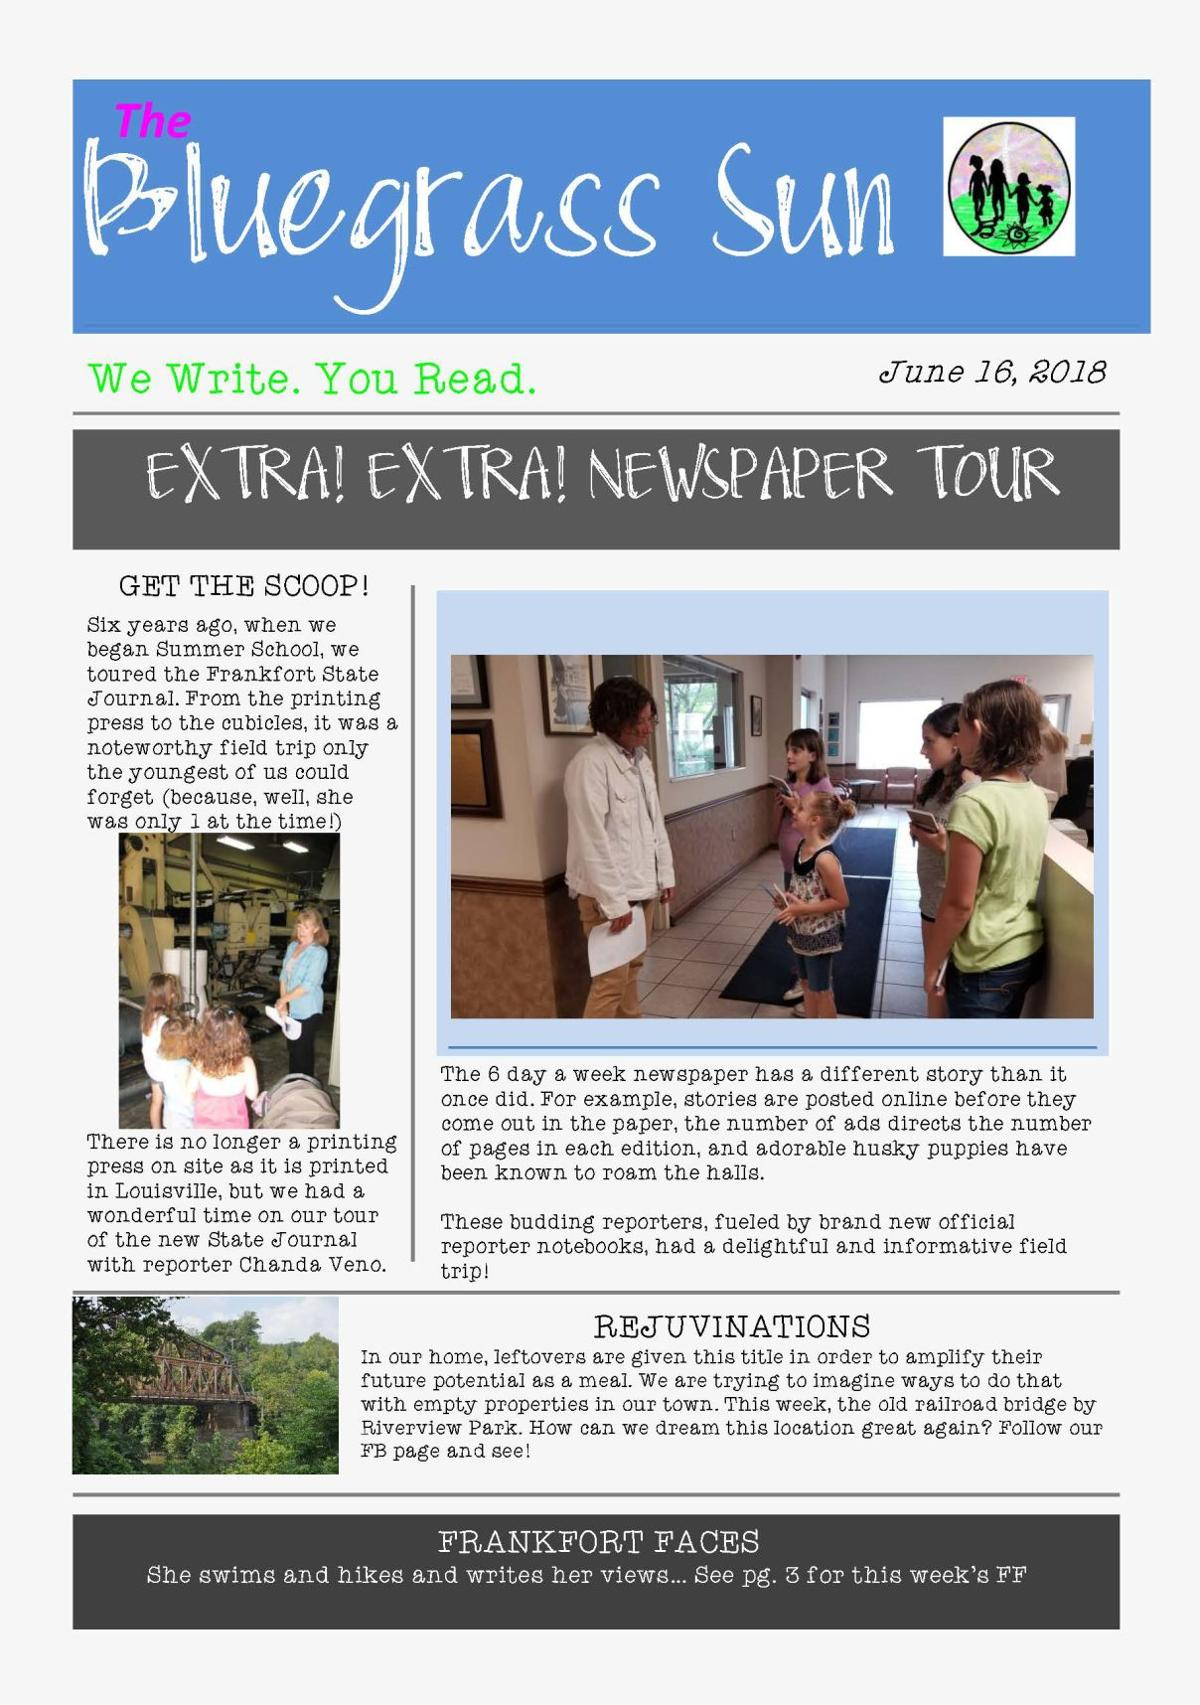 Education Spotlight: Newspaper is summer family project for Napier girls